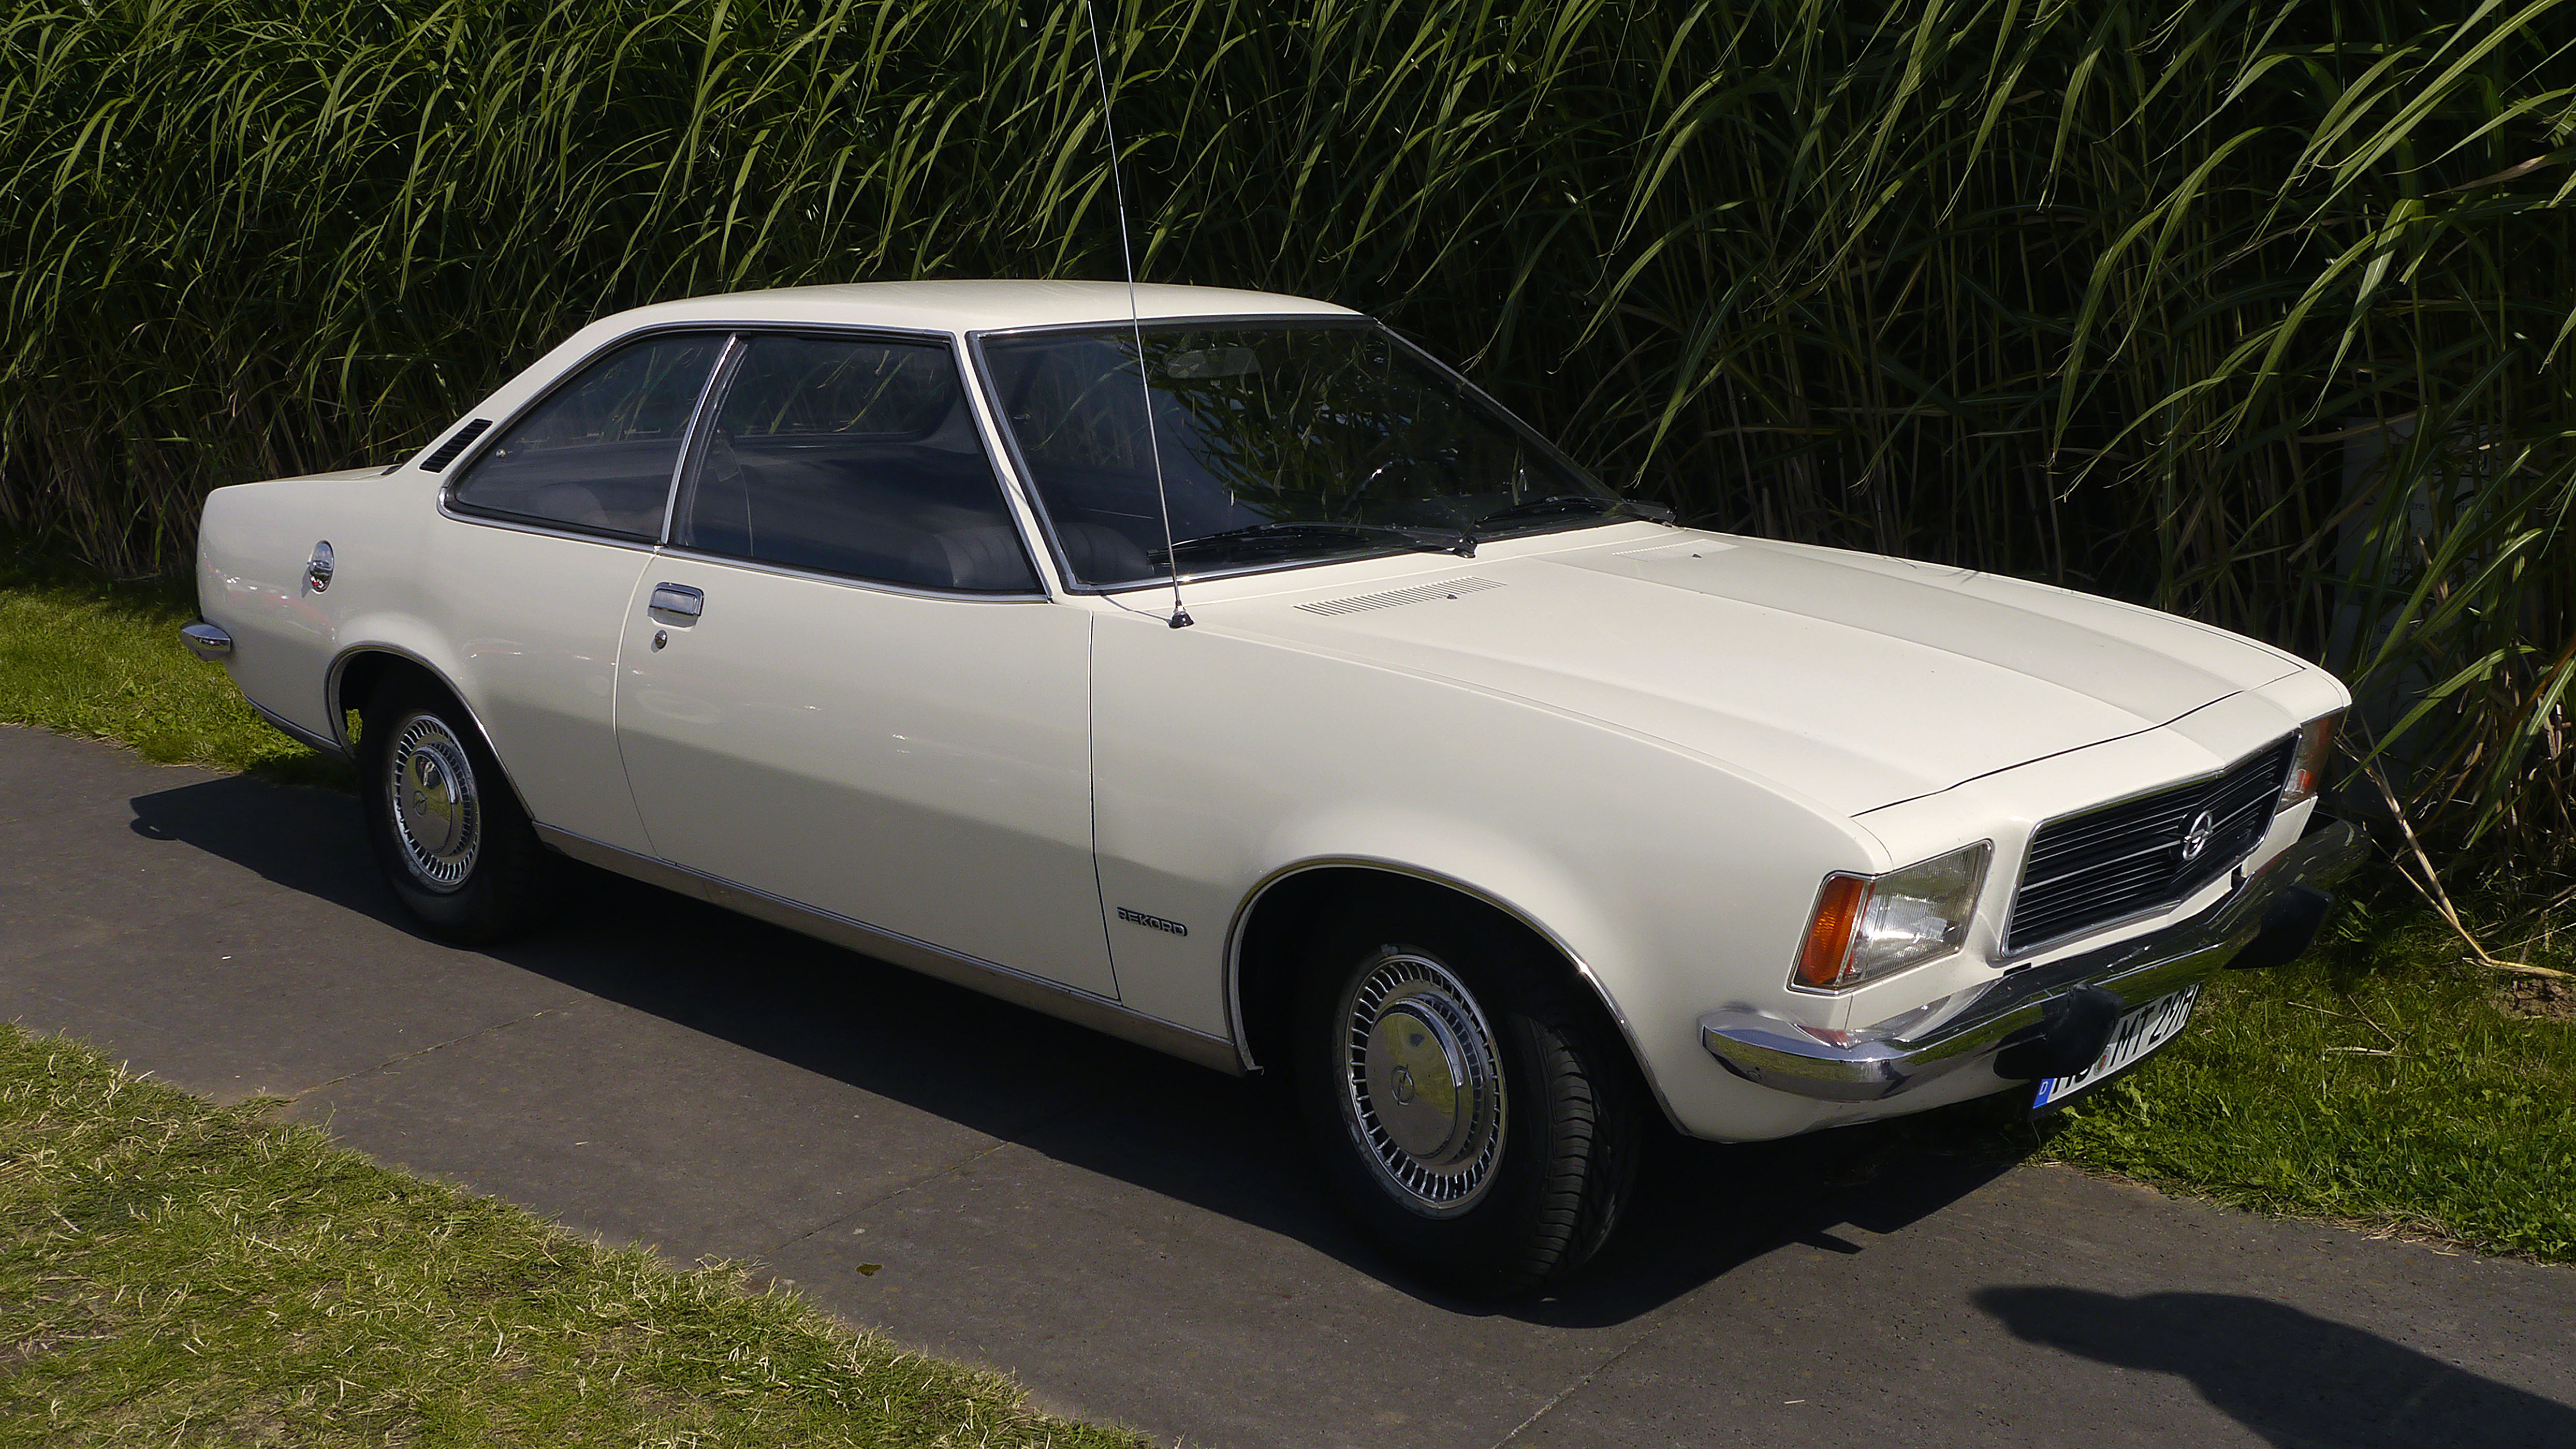 Opel Rekord D 1700 Coupé | Flickr - Photo Sharing!